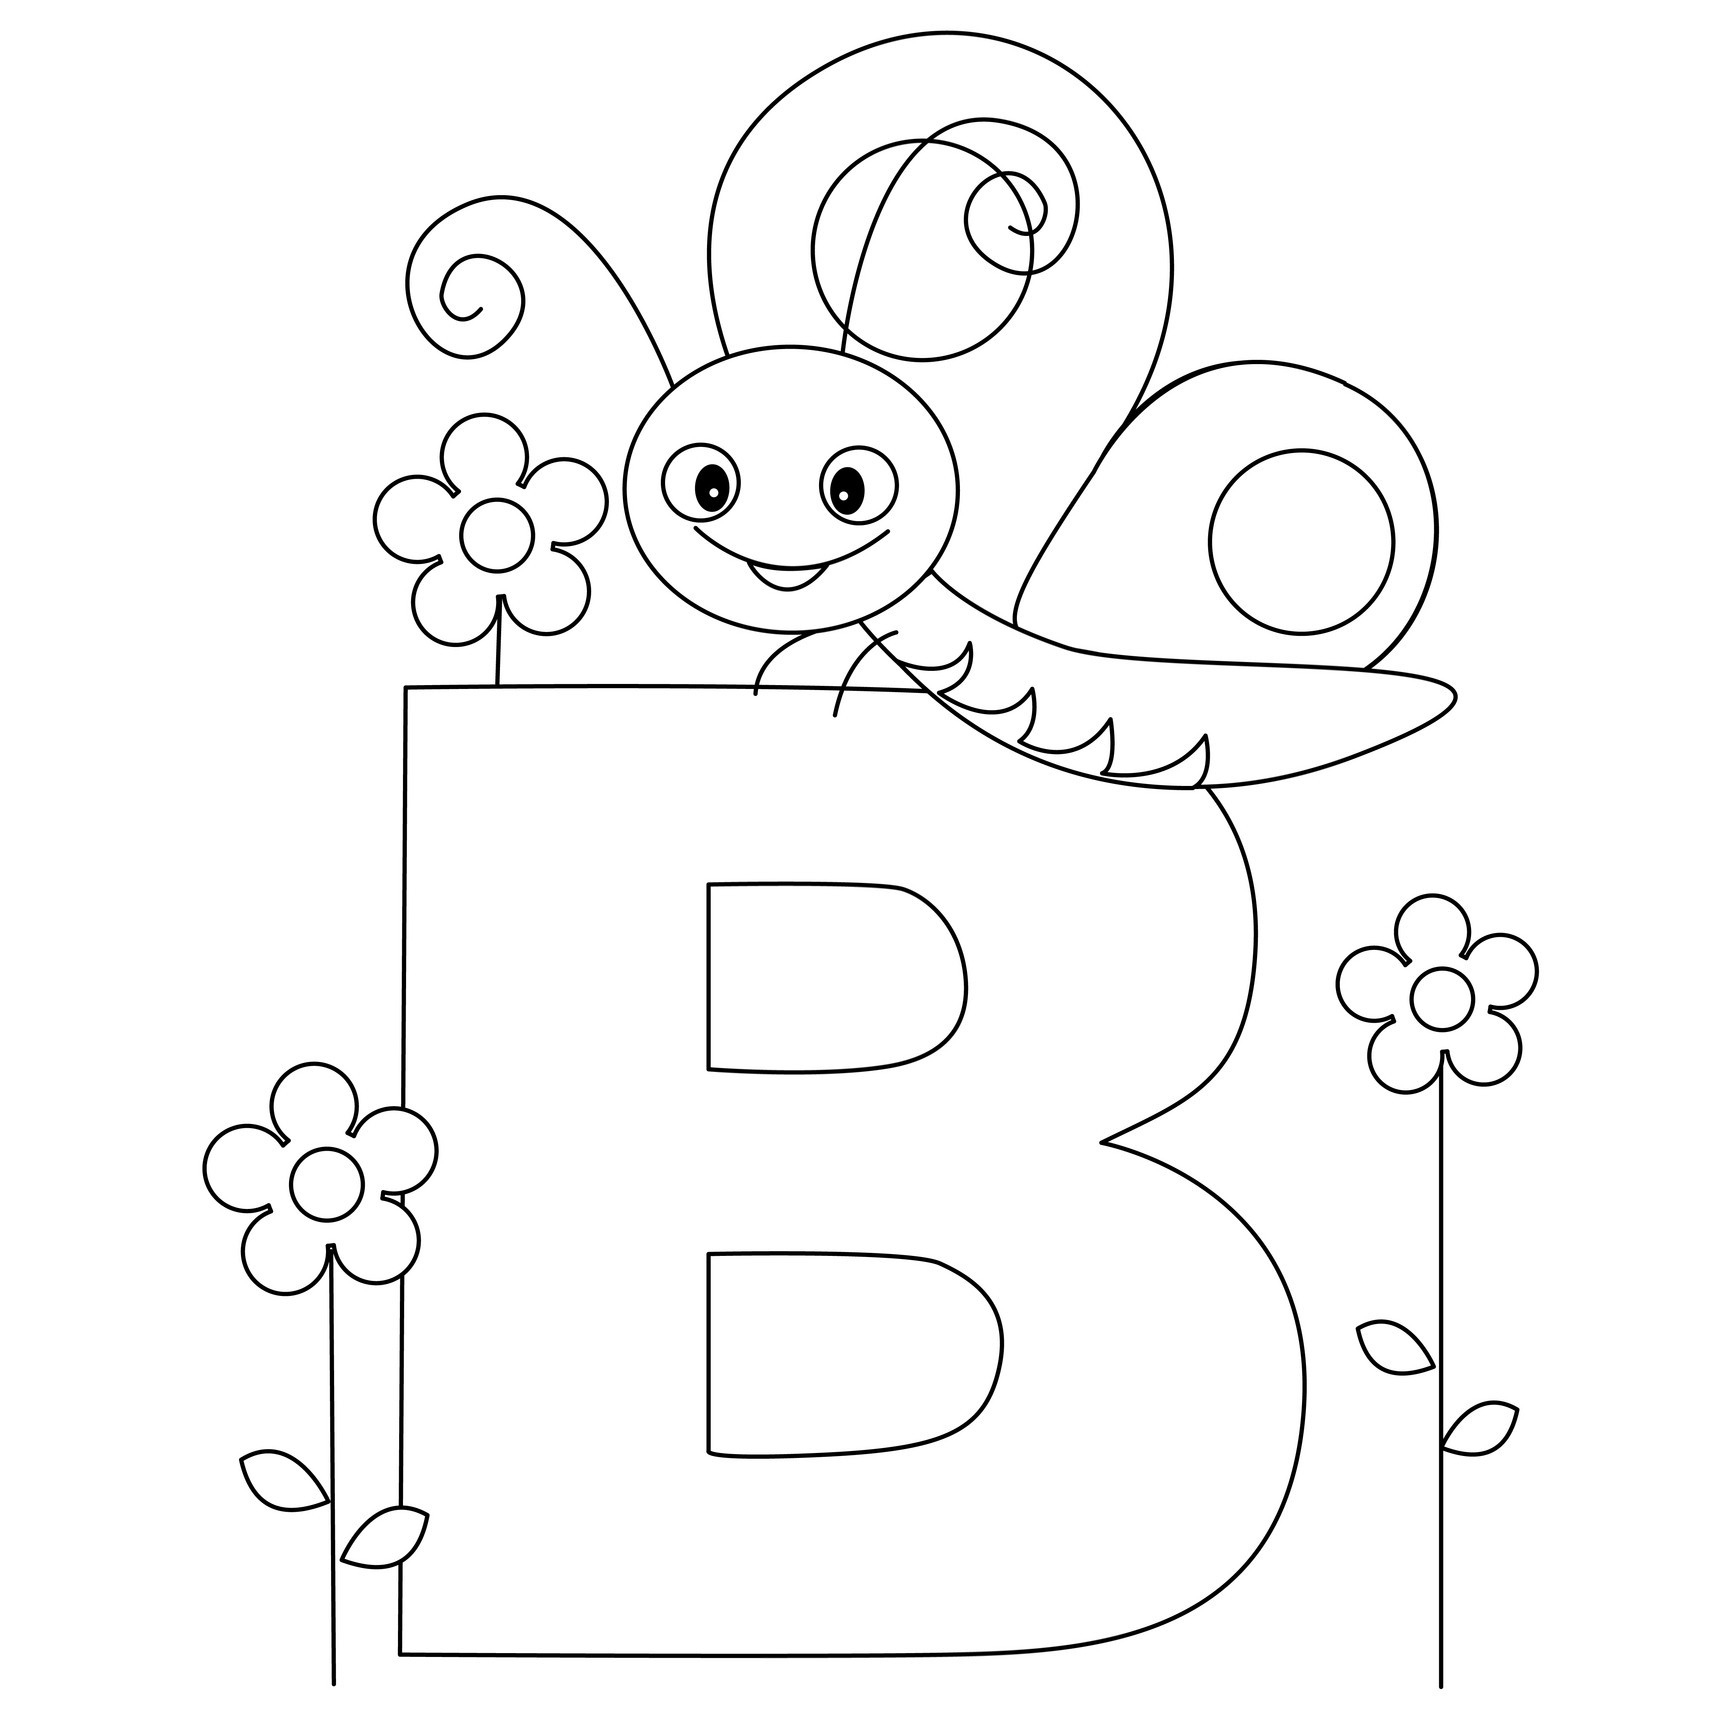 Coloring Pages : Free Printable Alphabet Coloring Pages For Kids - Free Printable Alphabet Coloring Pages